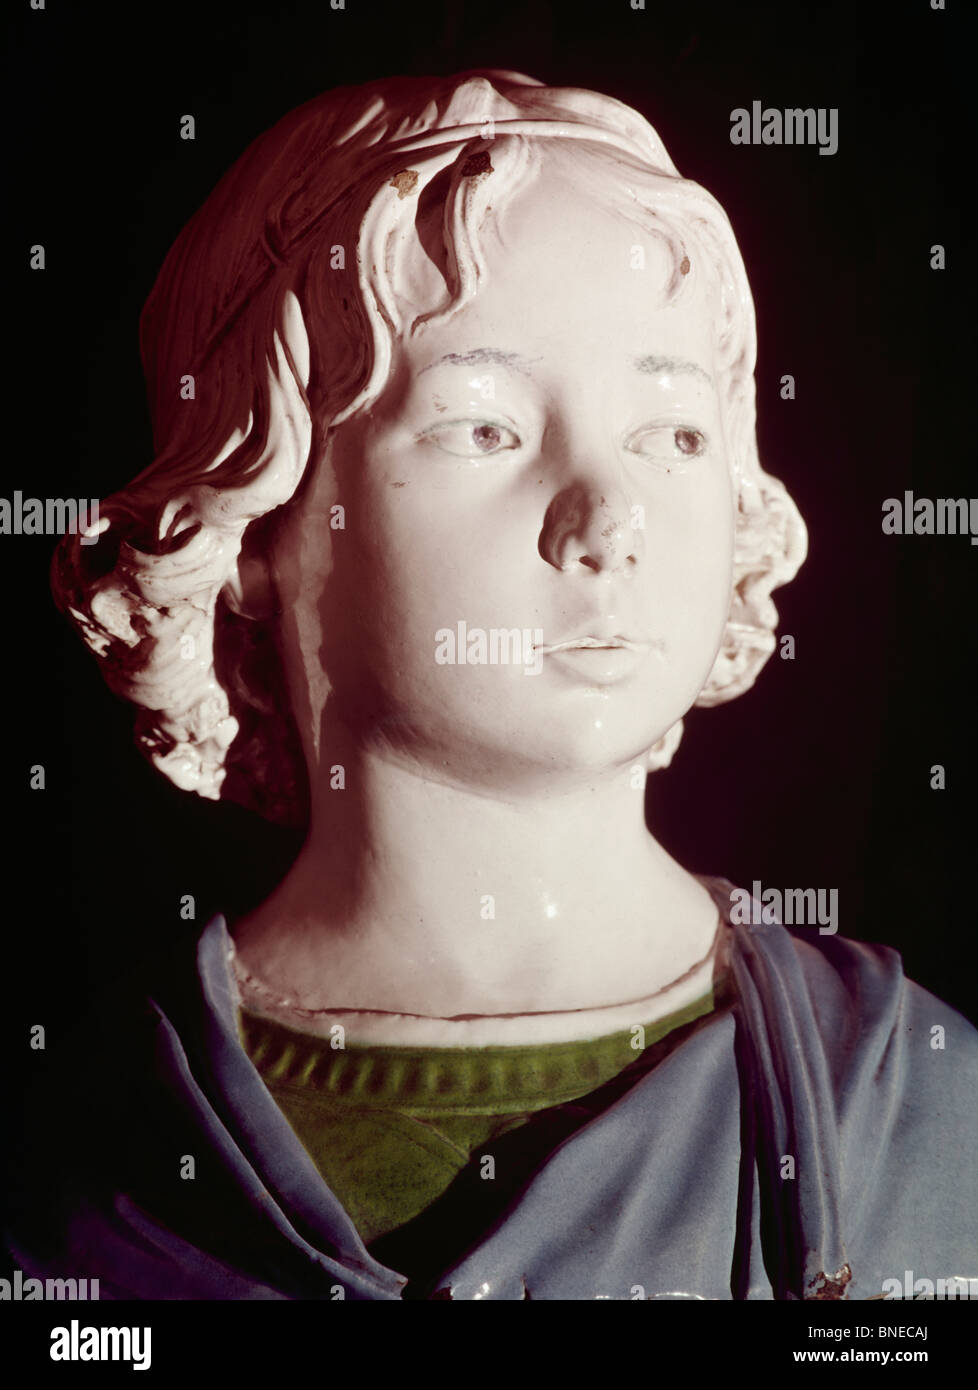 Bust of Boy by Andrea Della Robbia, glazed terracotta, (1435-1525) - Stock Image